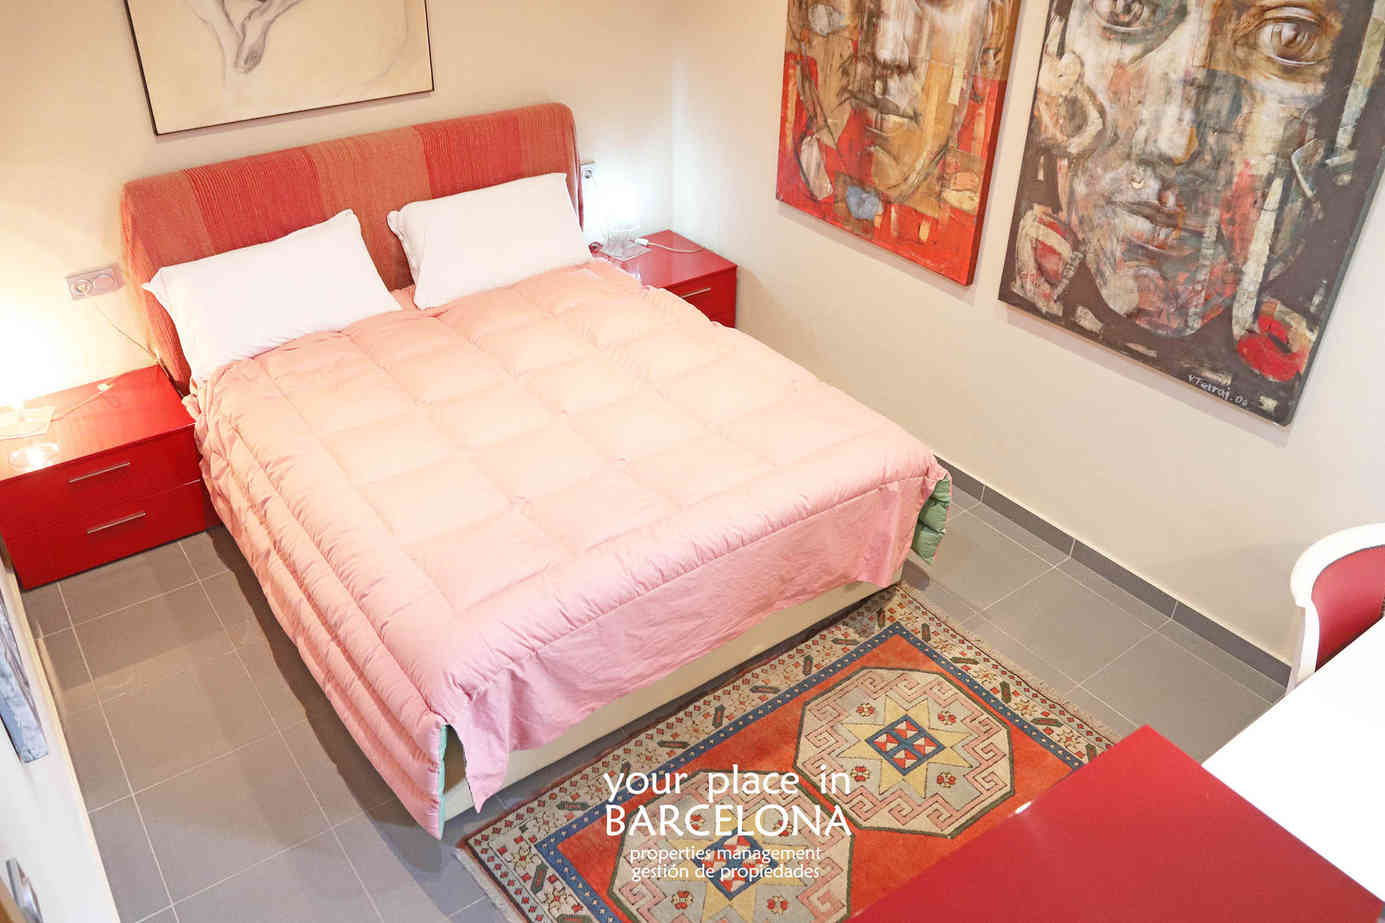 18 copia.JPGyour-place-in-barcelona-alqu